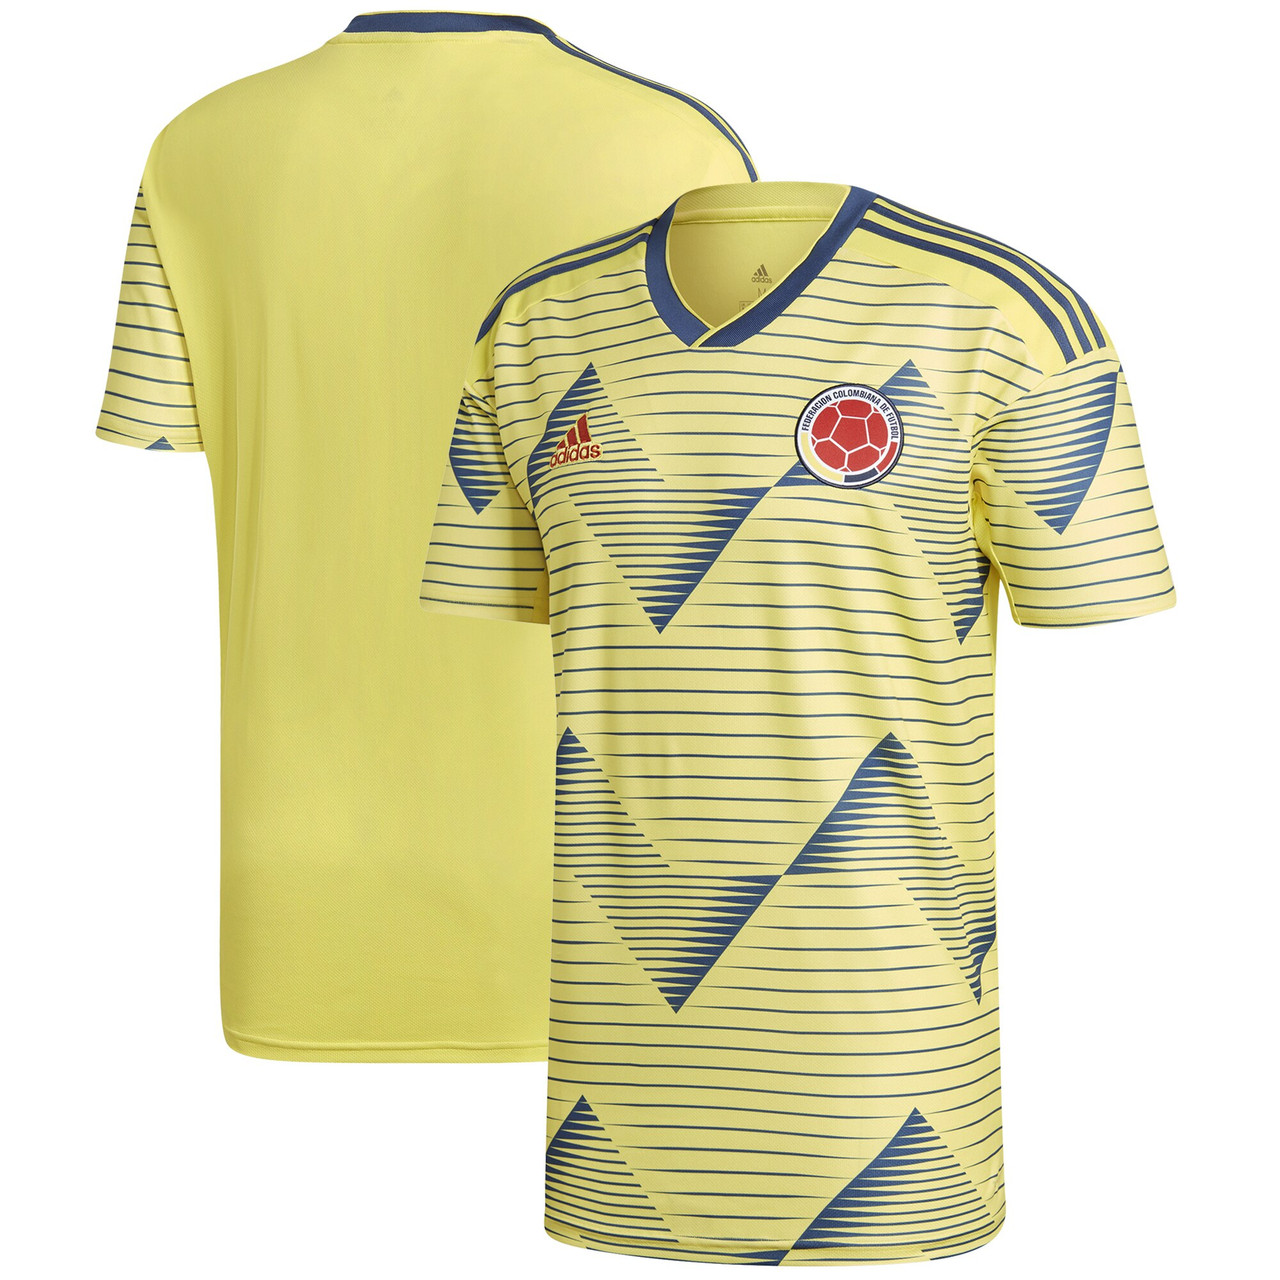 ADIDAS COLOMBIA 2020 HOME JERSEY